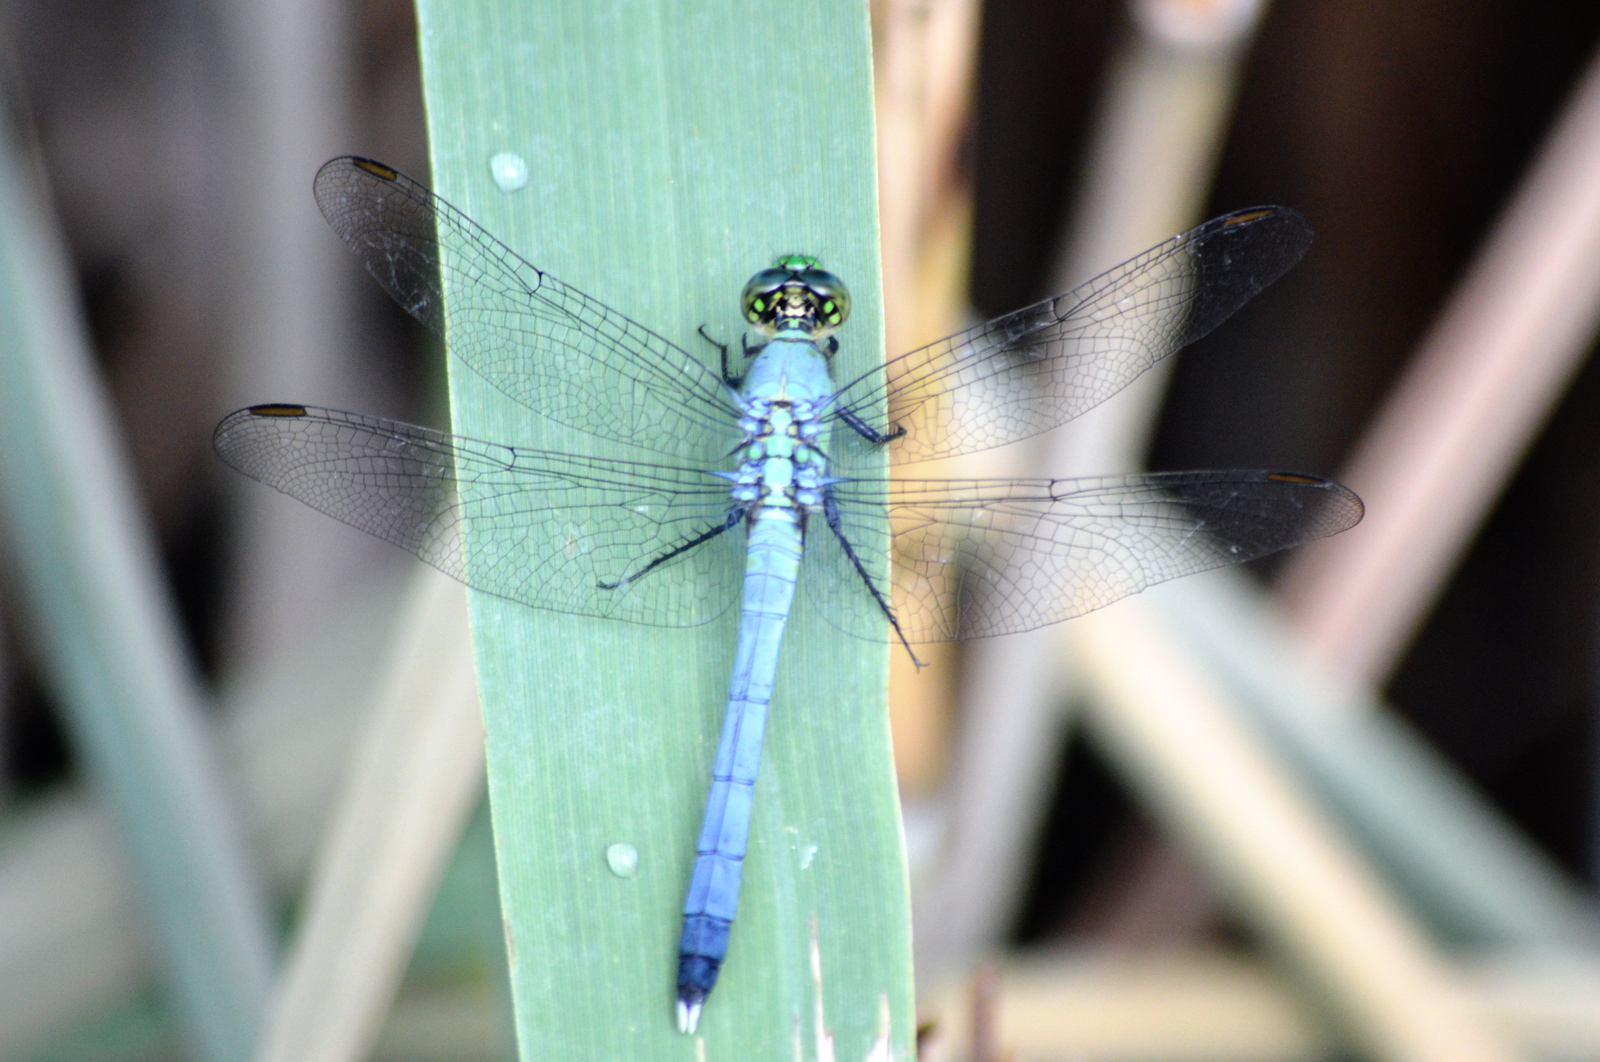 Green dragonfly pictures - photo#37